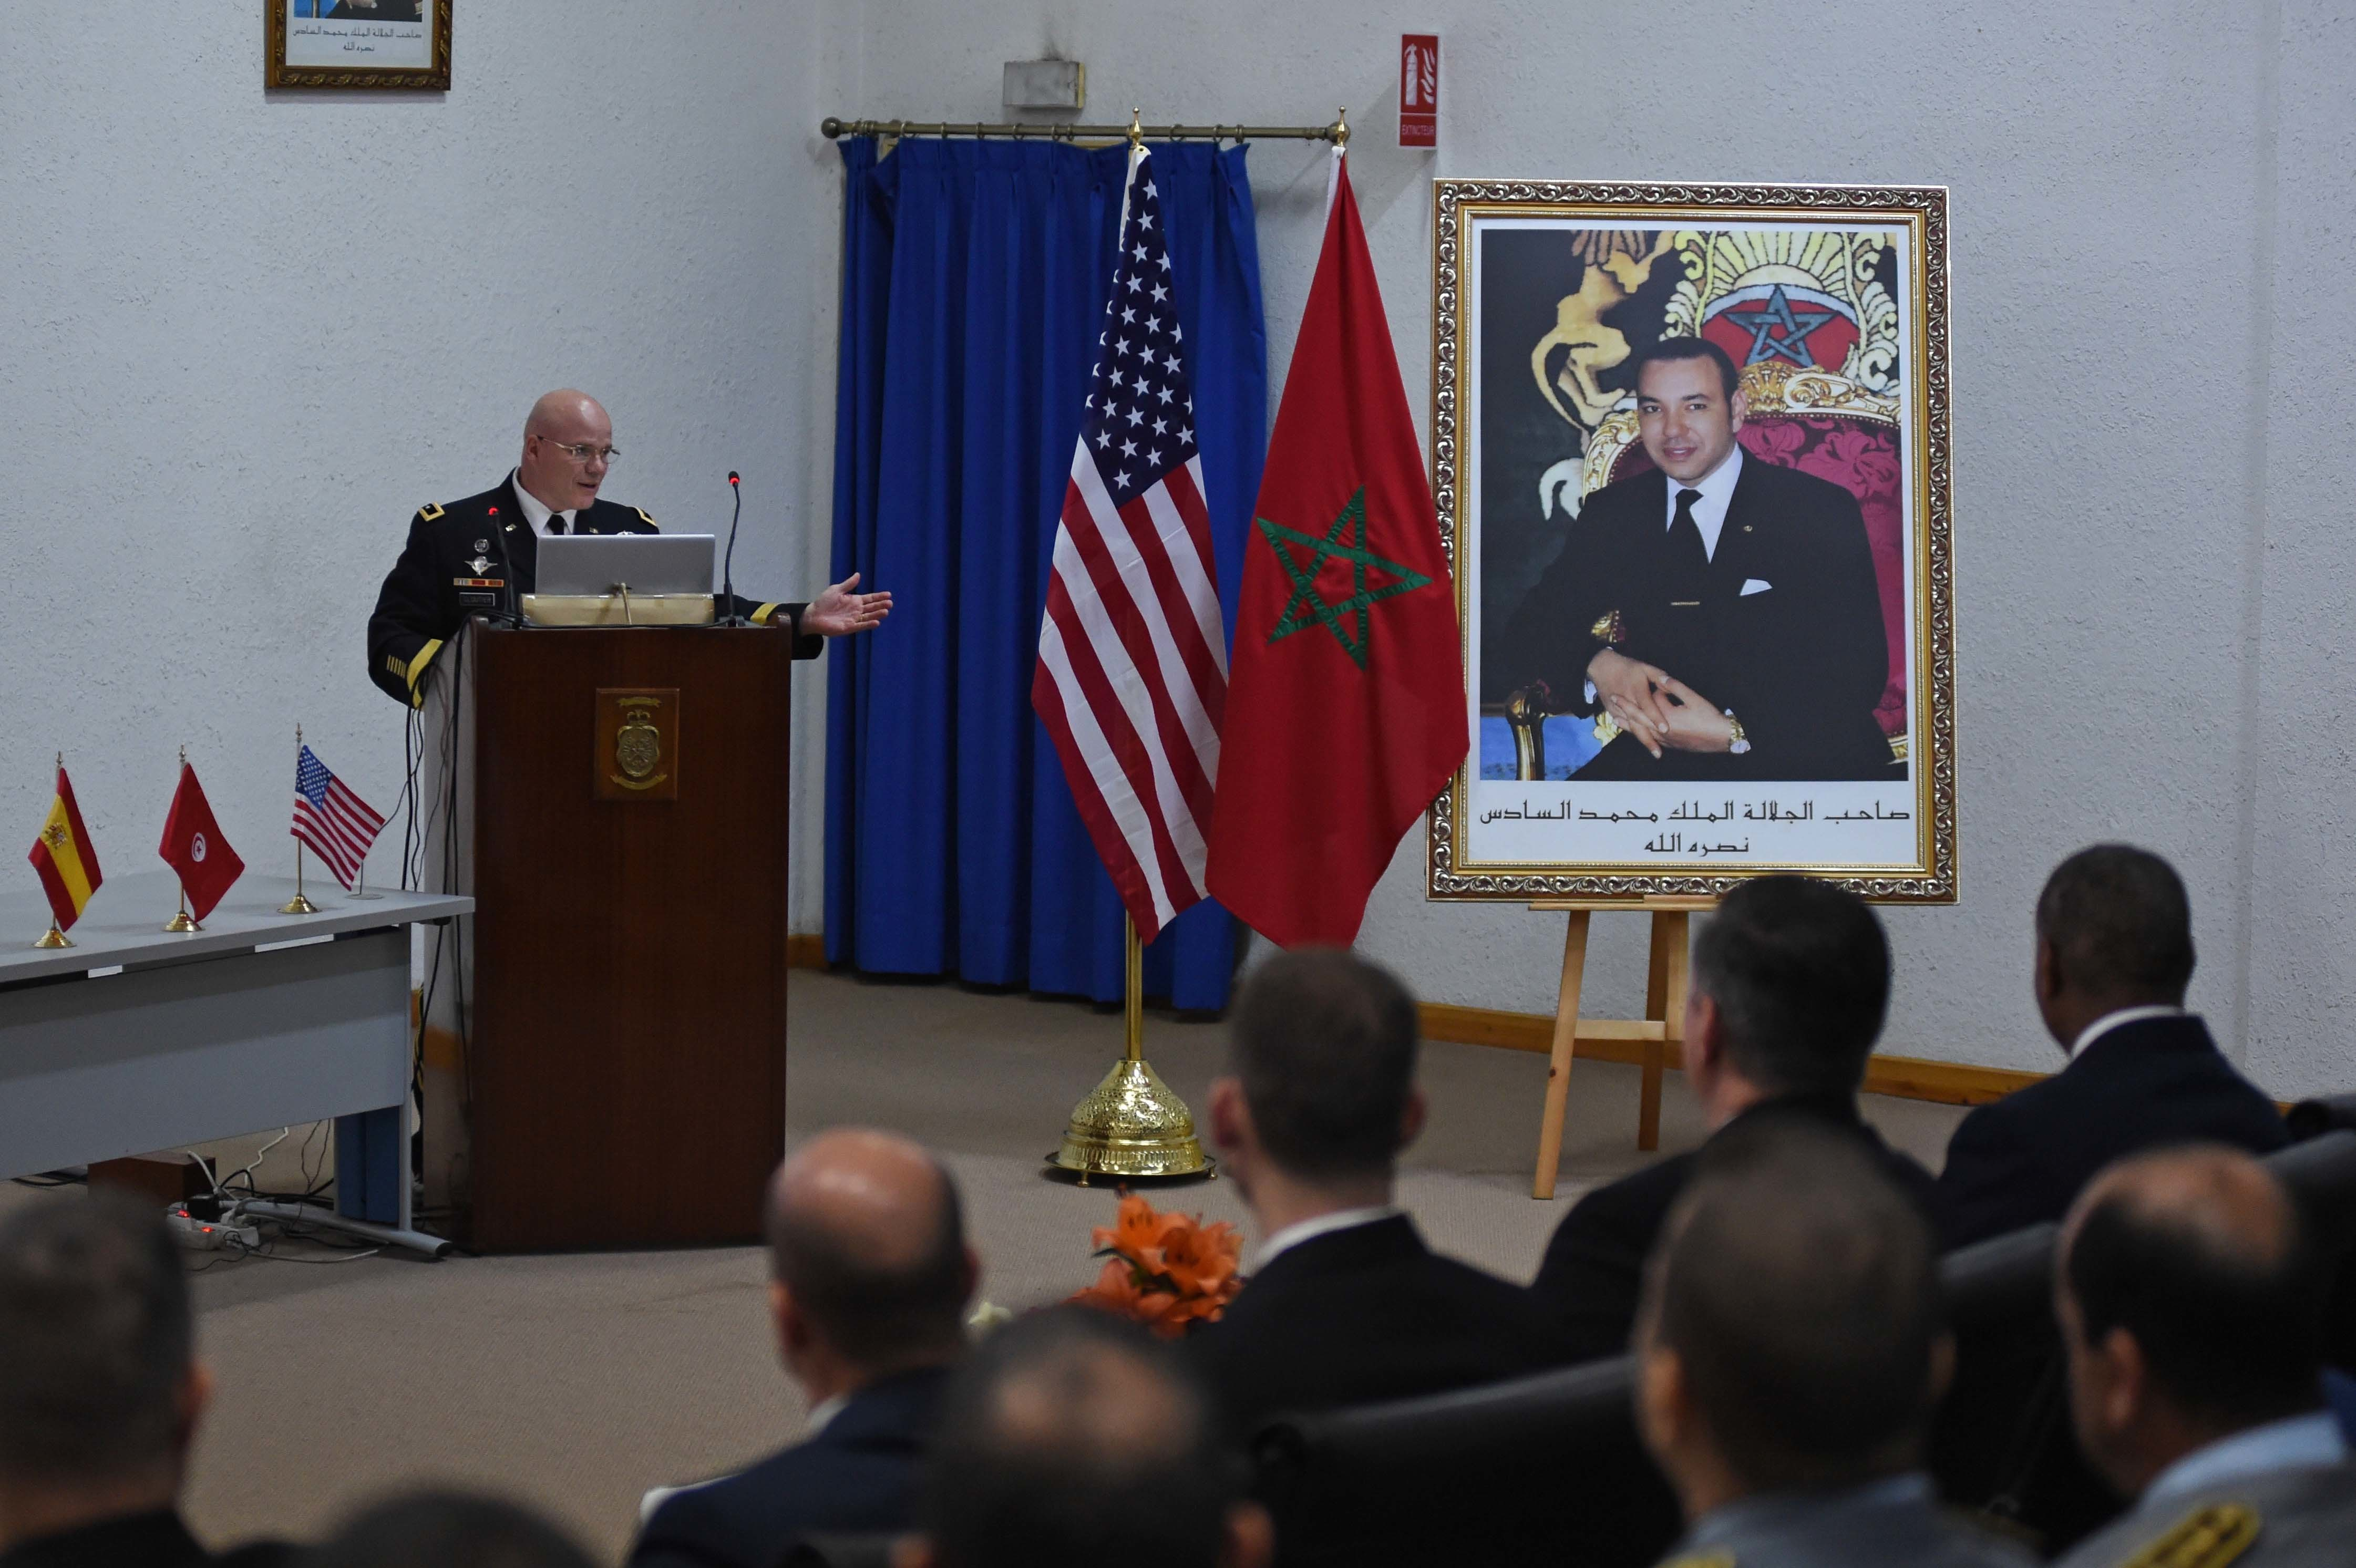 190329-N-PM781-005